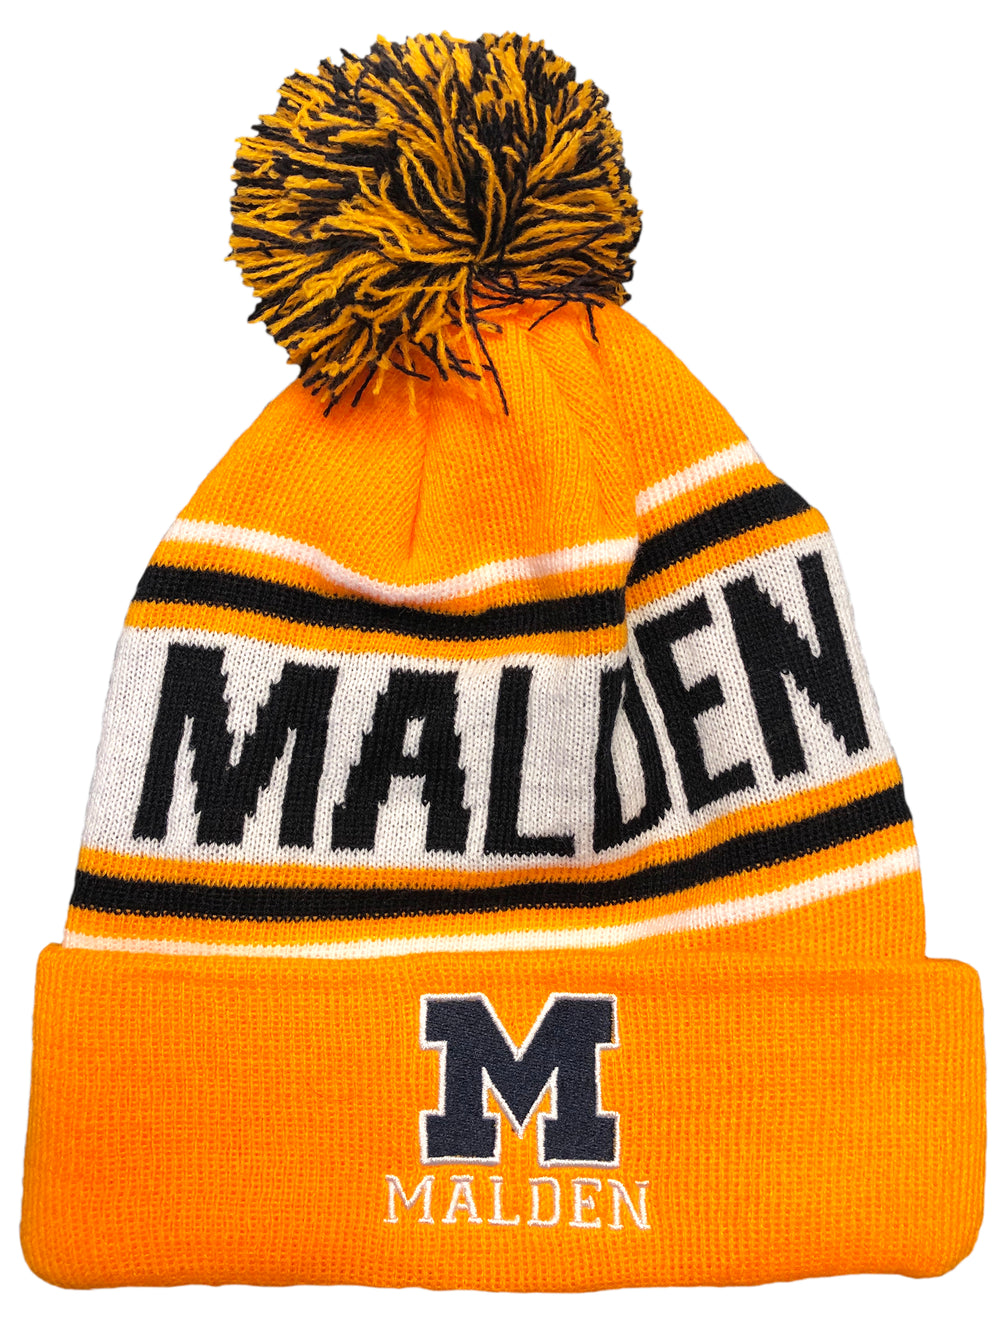 Malden Winter Hat